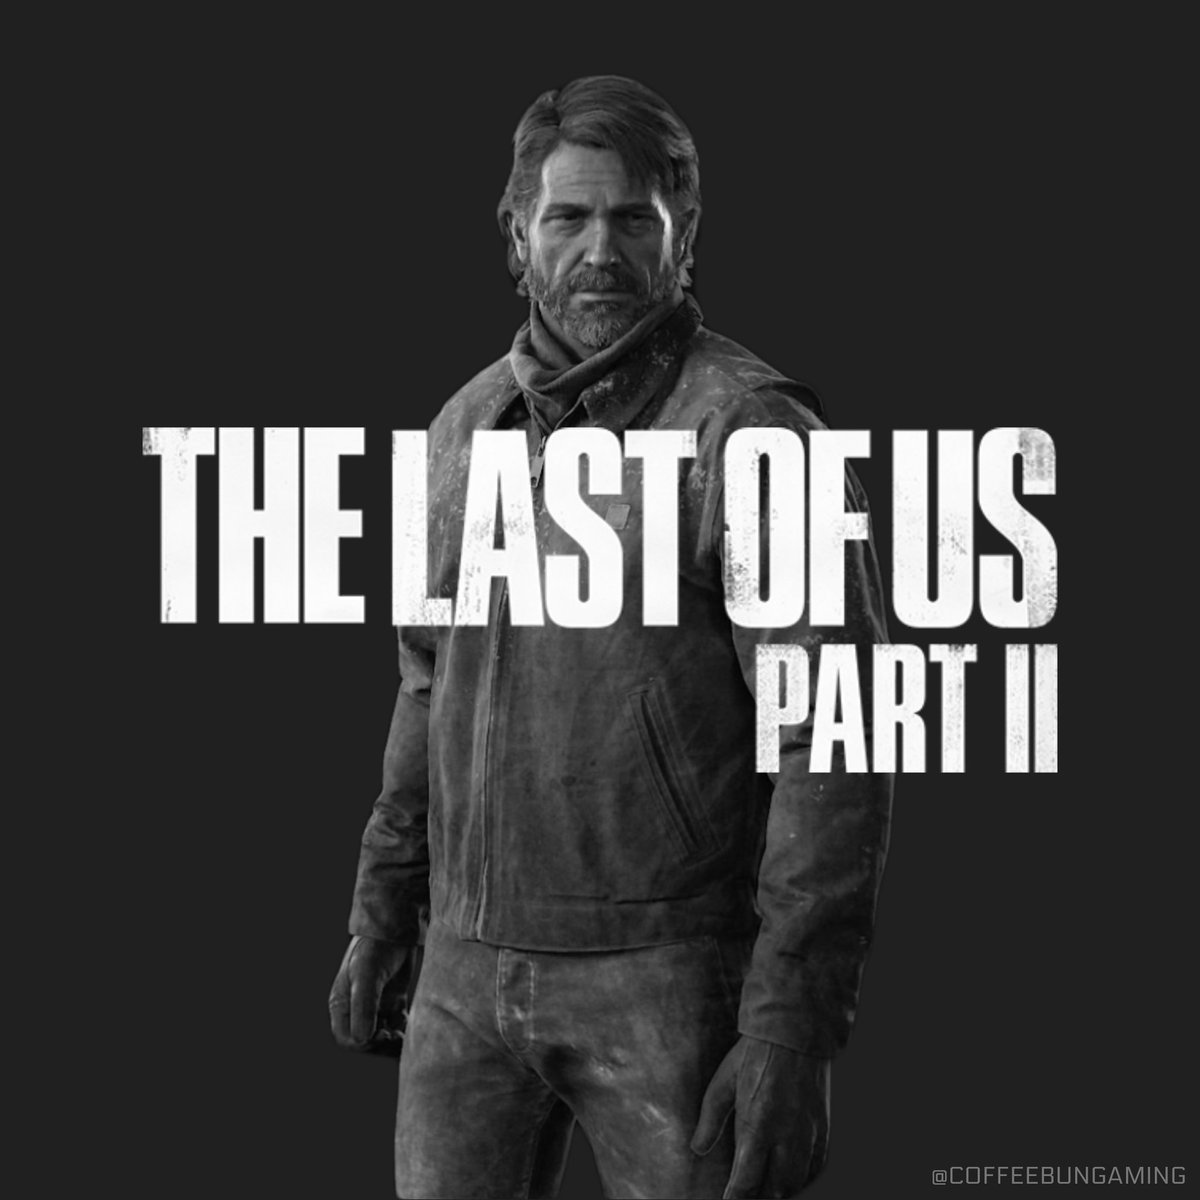 As I aim for 100% Trophy Completion, #IWantToPretend #TheLastofUsPartII has a good story, so I'll be skipping all the cutscenes on my 2nd playthrough.  #IWantToPretend #JoelMiller is still alive.